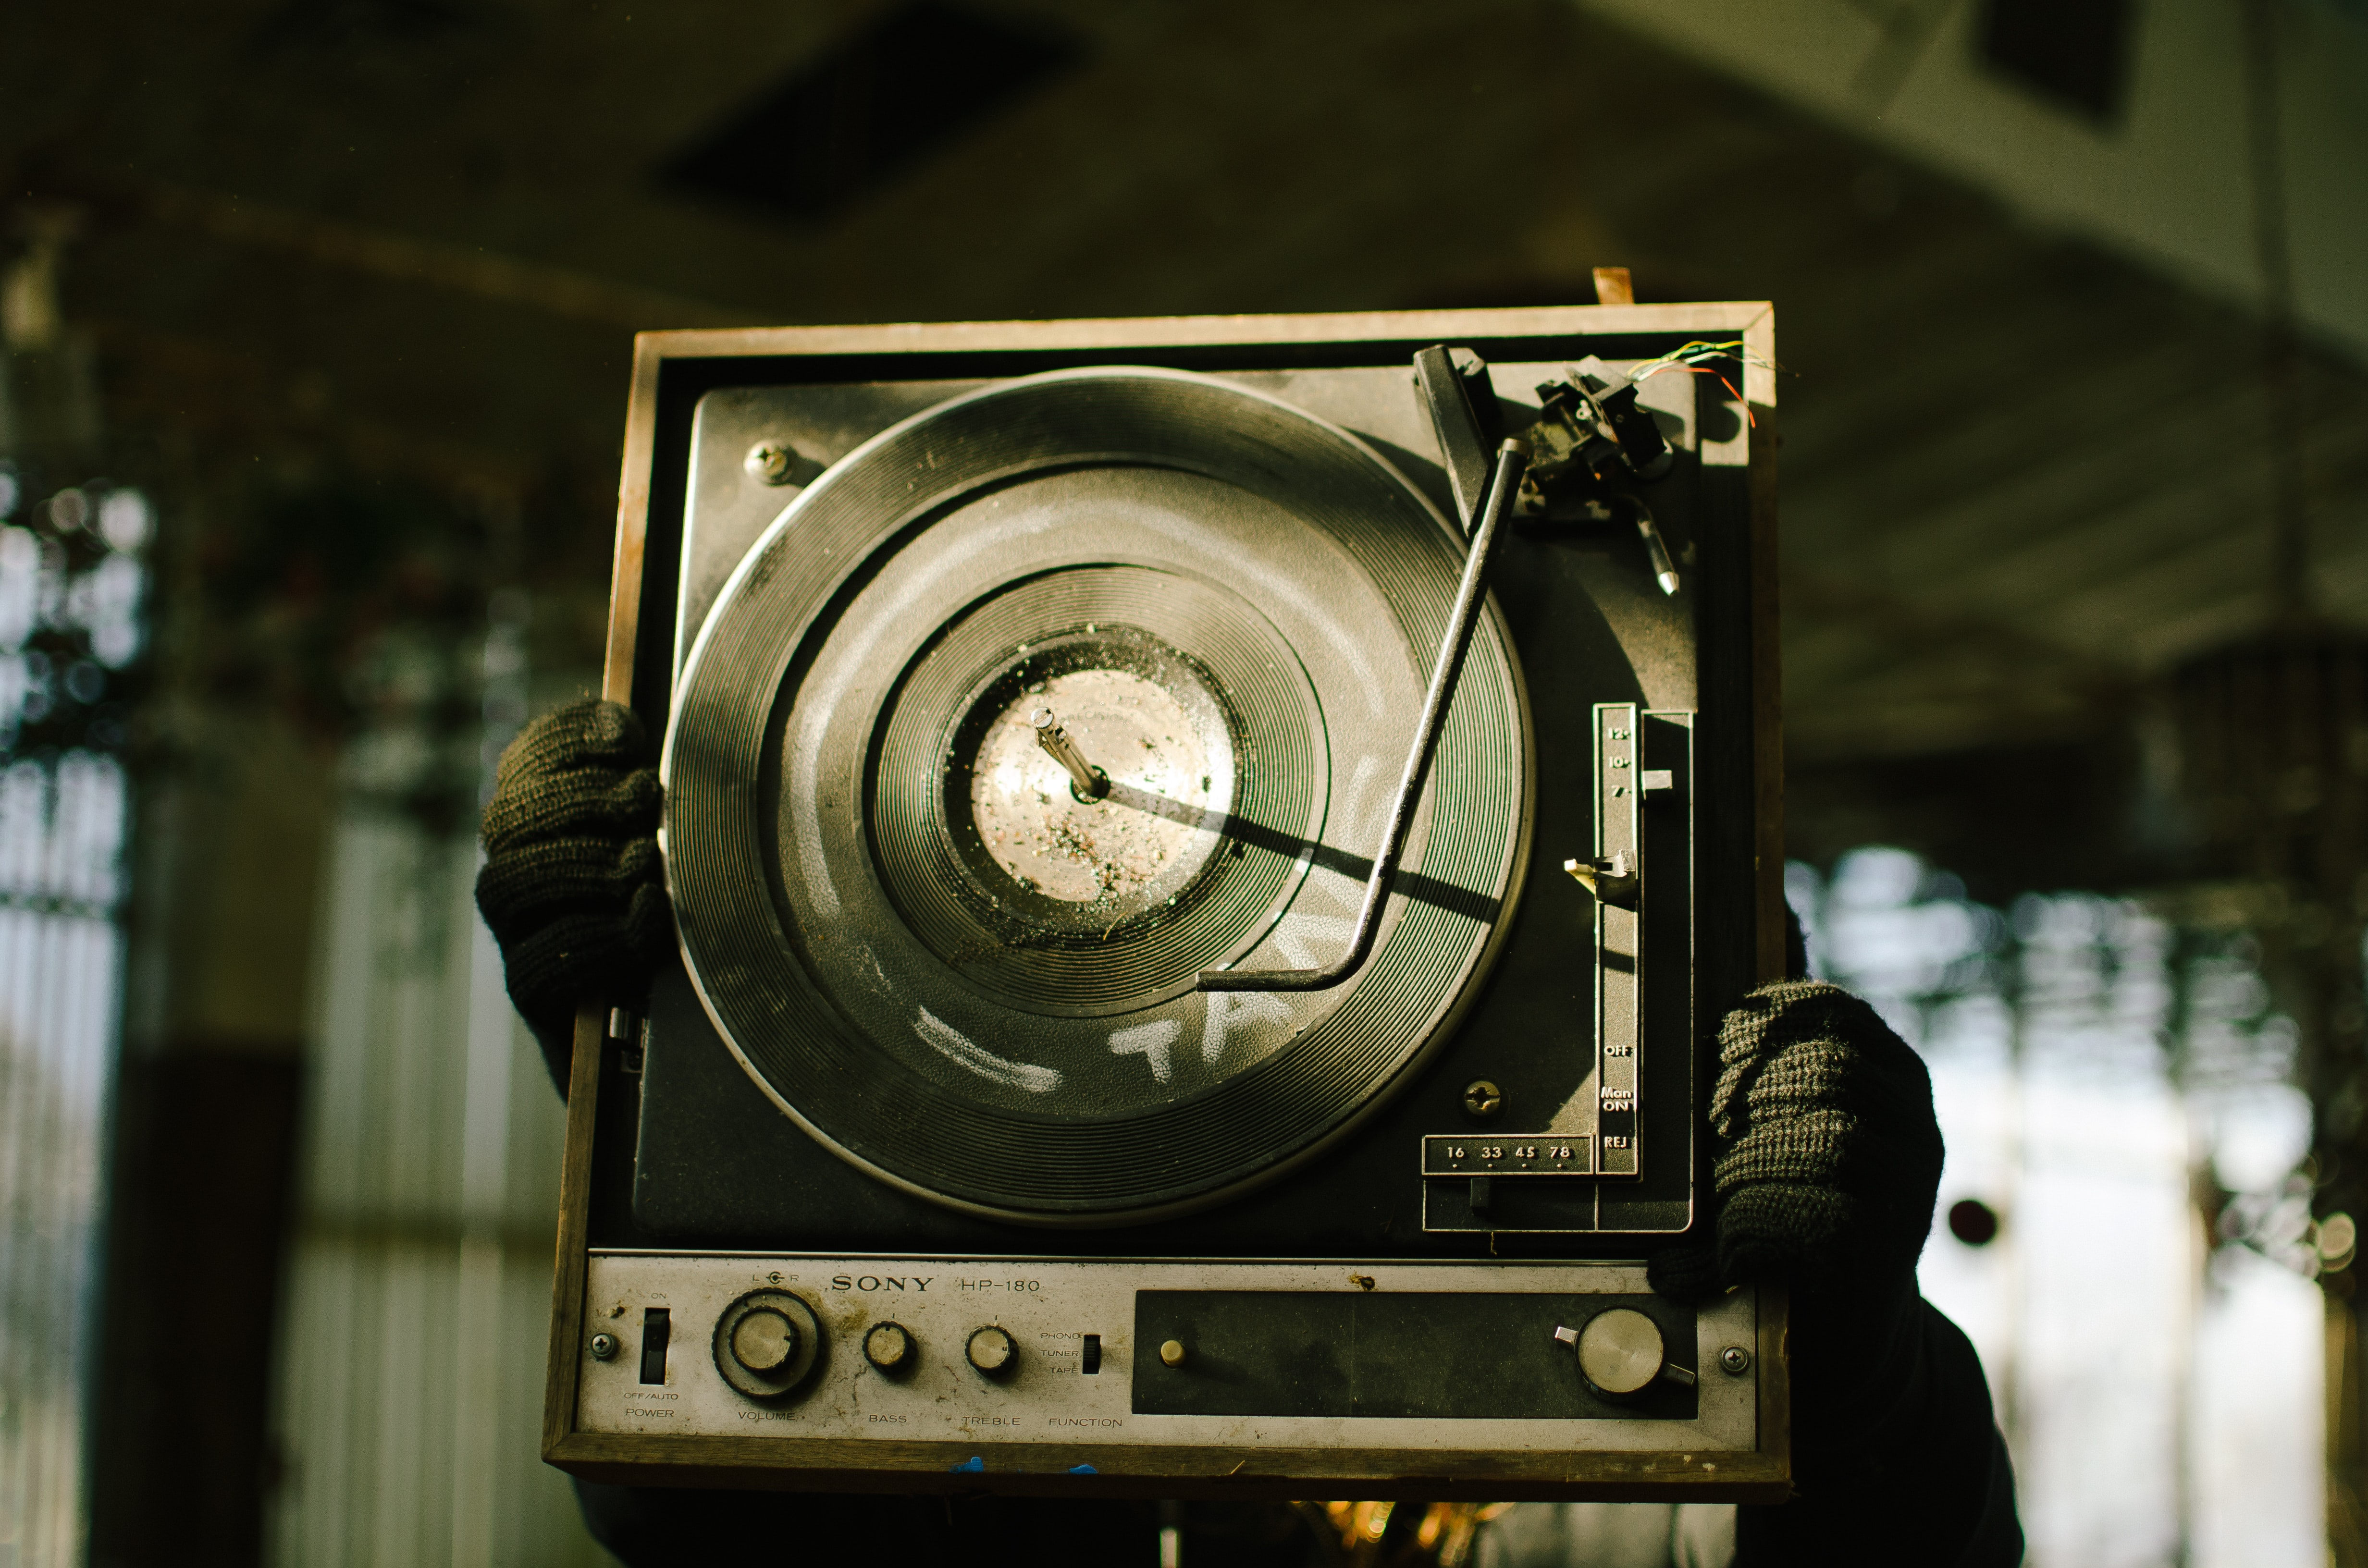 A person holding up a decrepit Sony record player